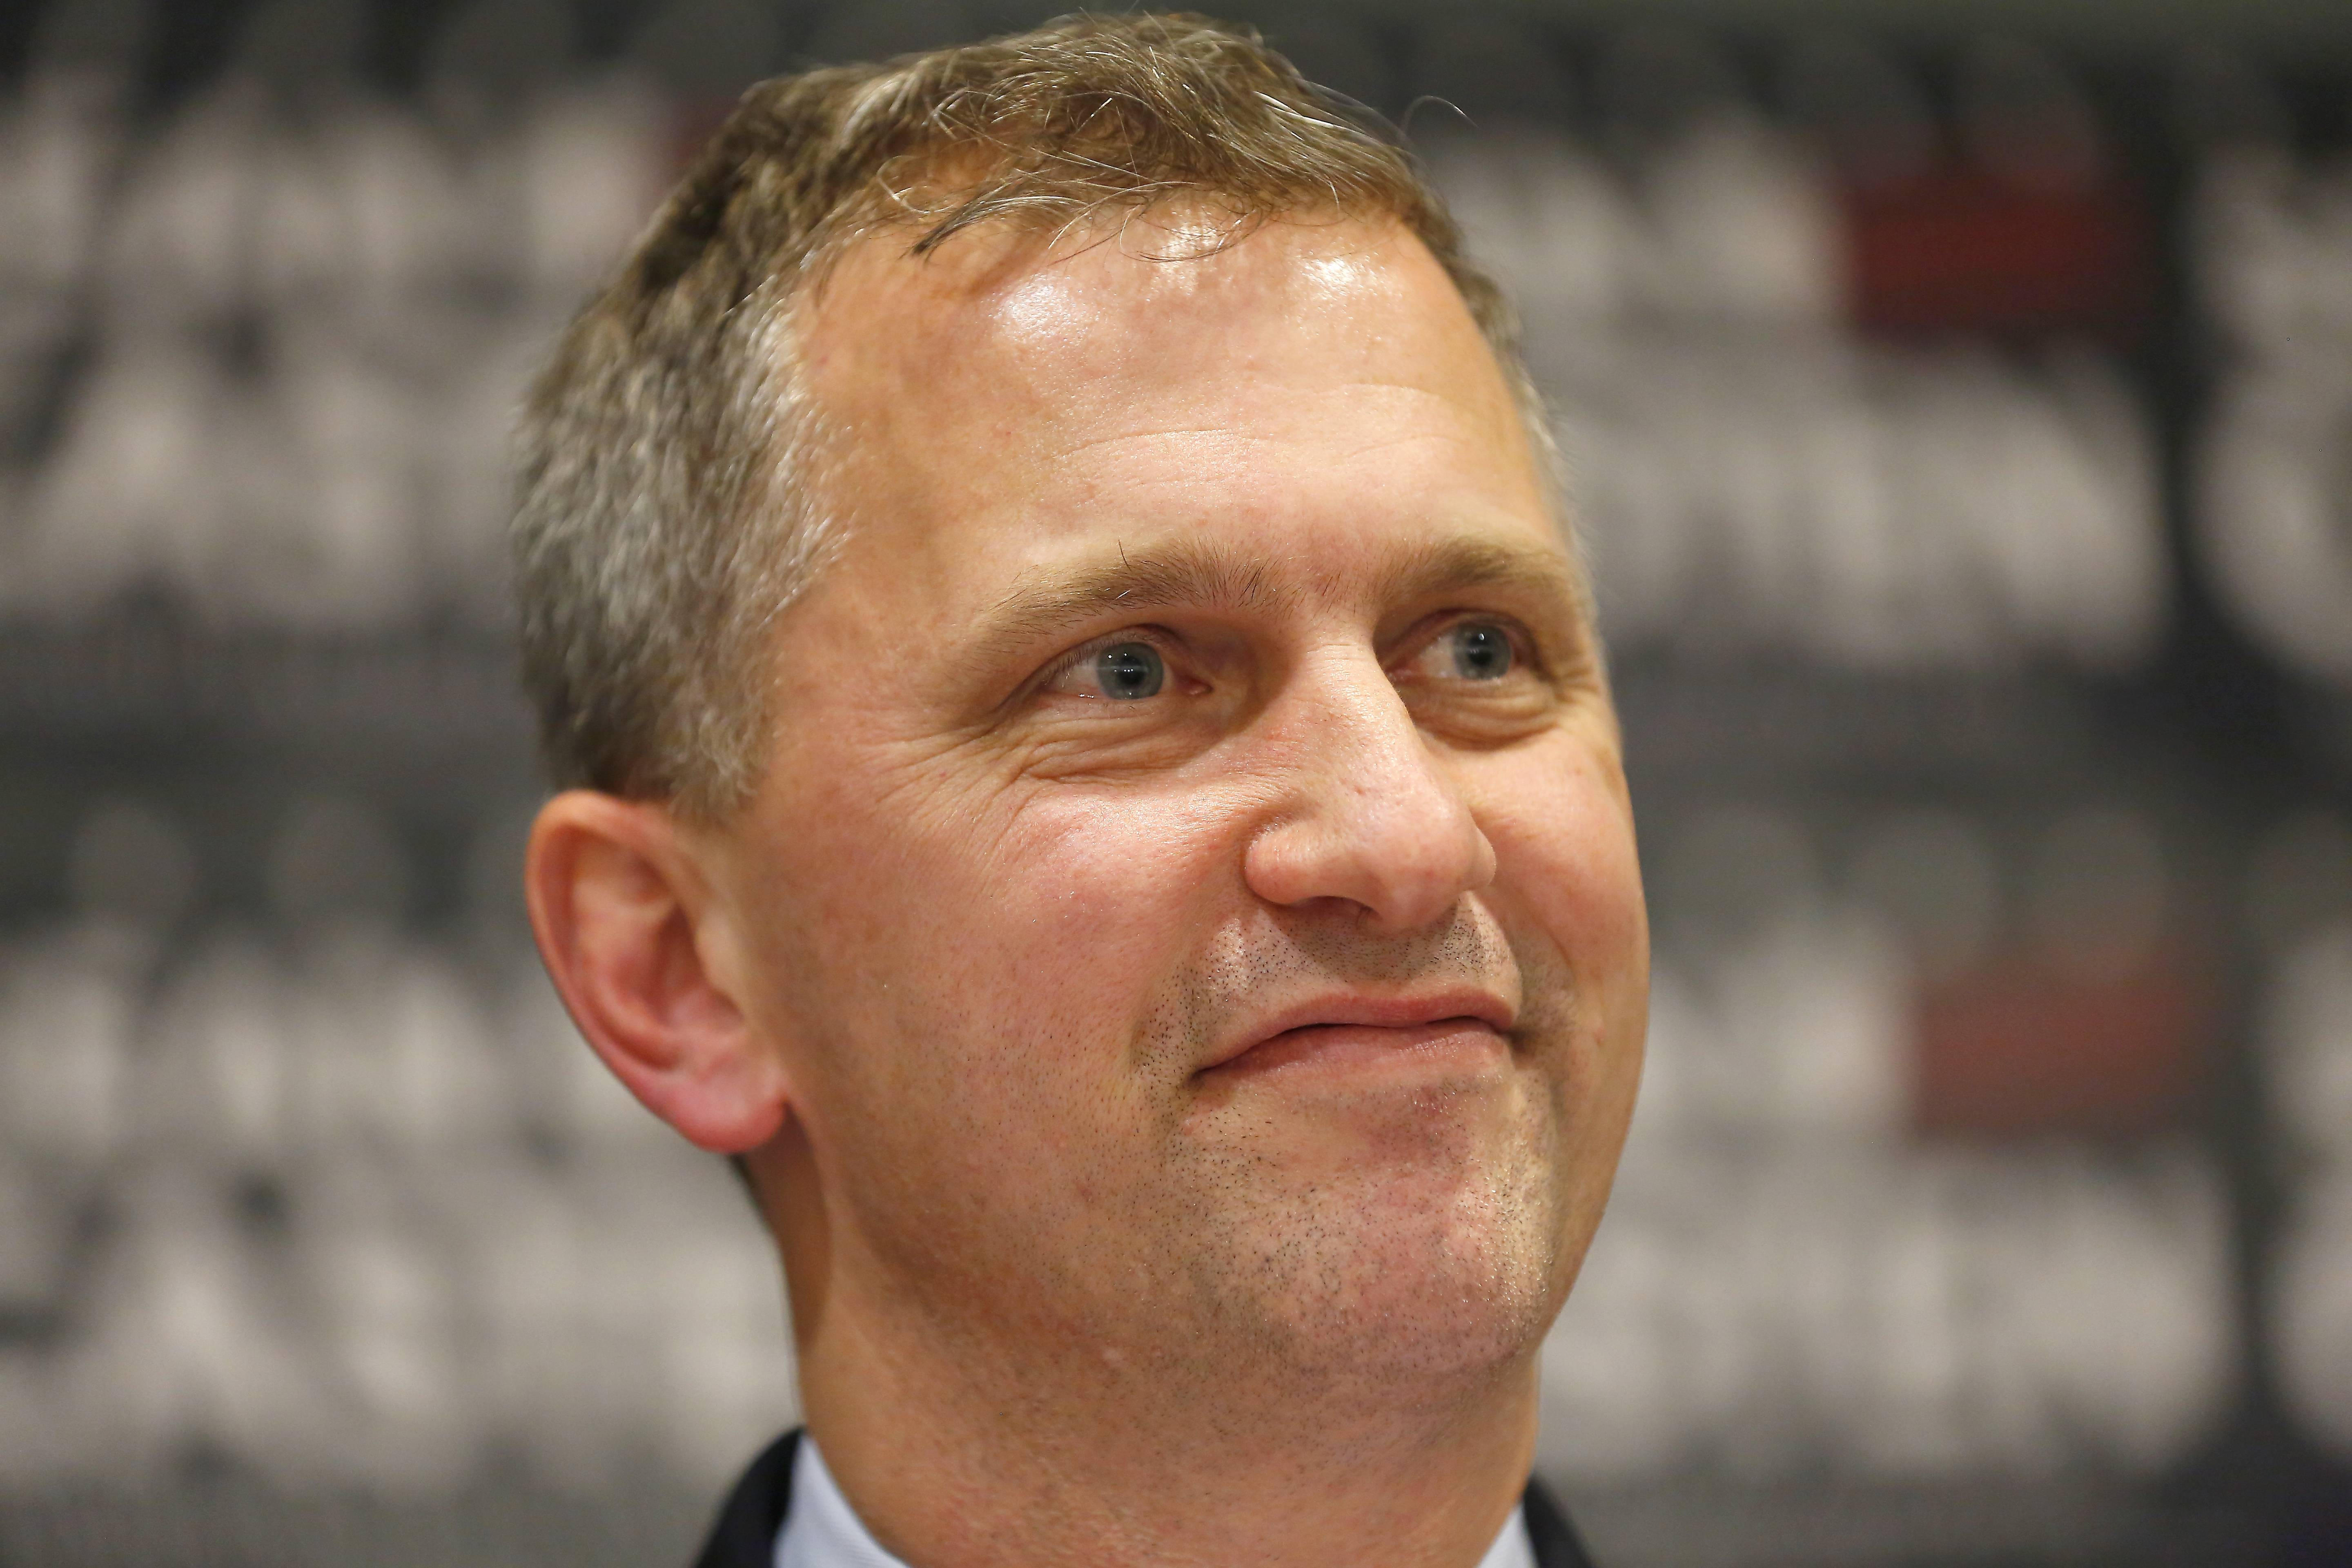 Sean Casten looks forward to his days as a member of the U.S. House of Representatives, after beating incumbent Republican Rep. Peter Roskam in the 6th District Tuesday night.